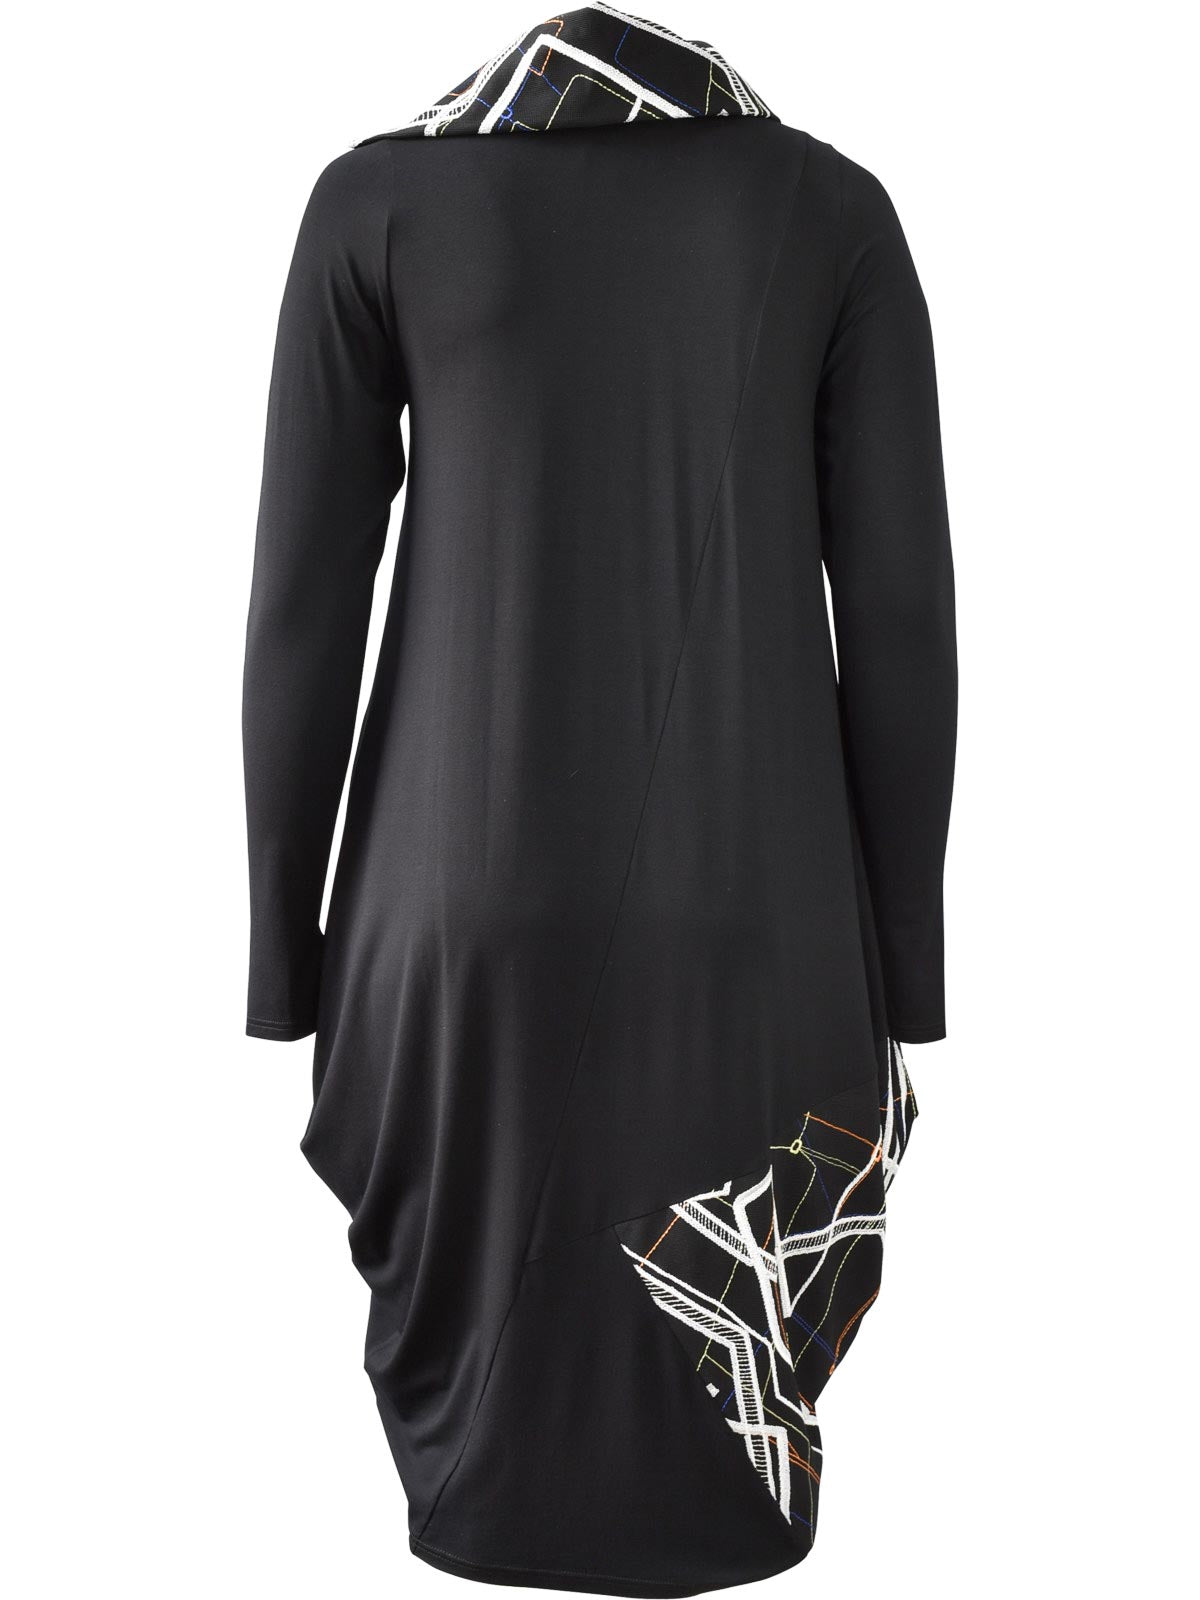 NY77 Embroidered Accent Dress, Black/Multi